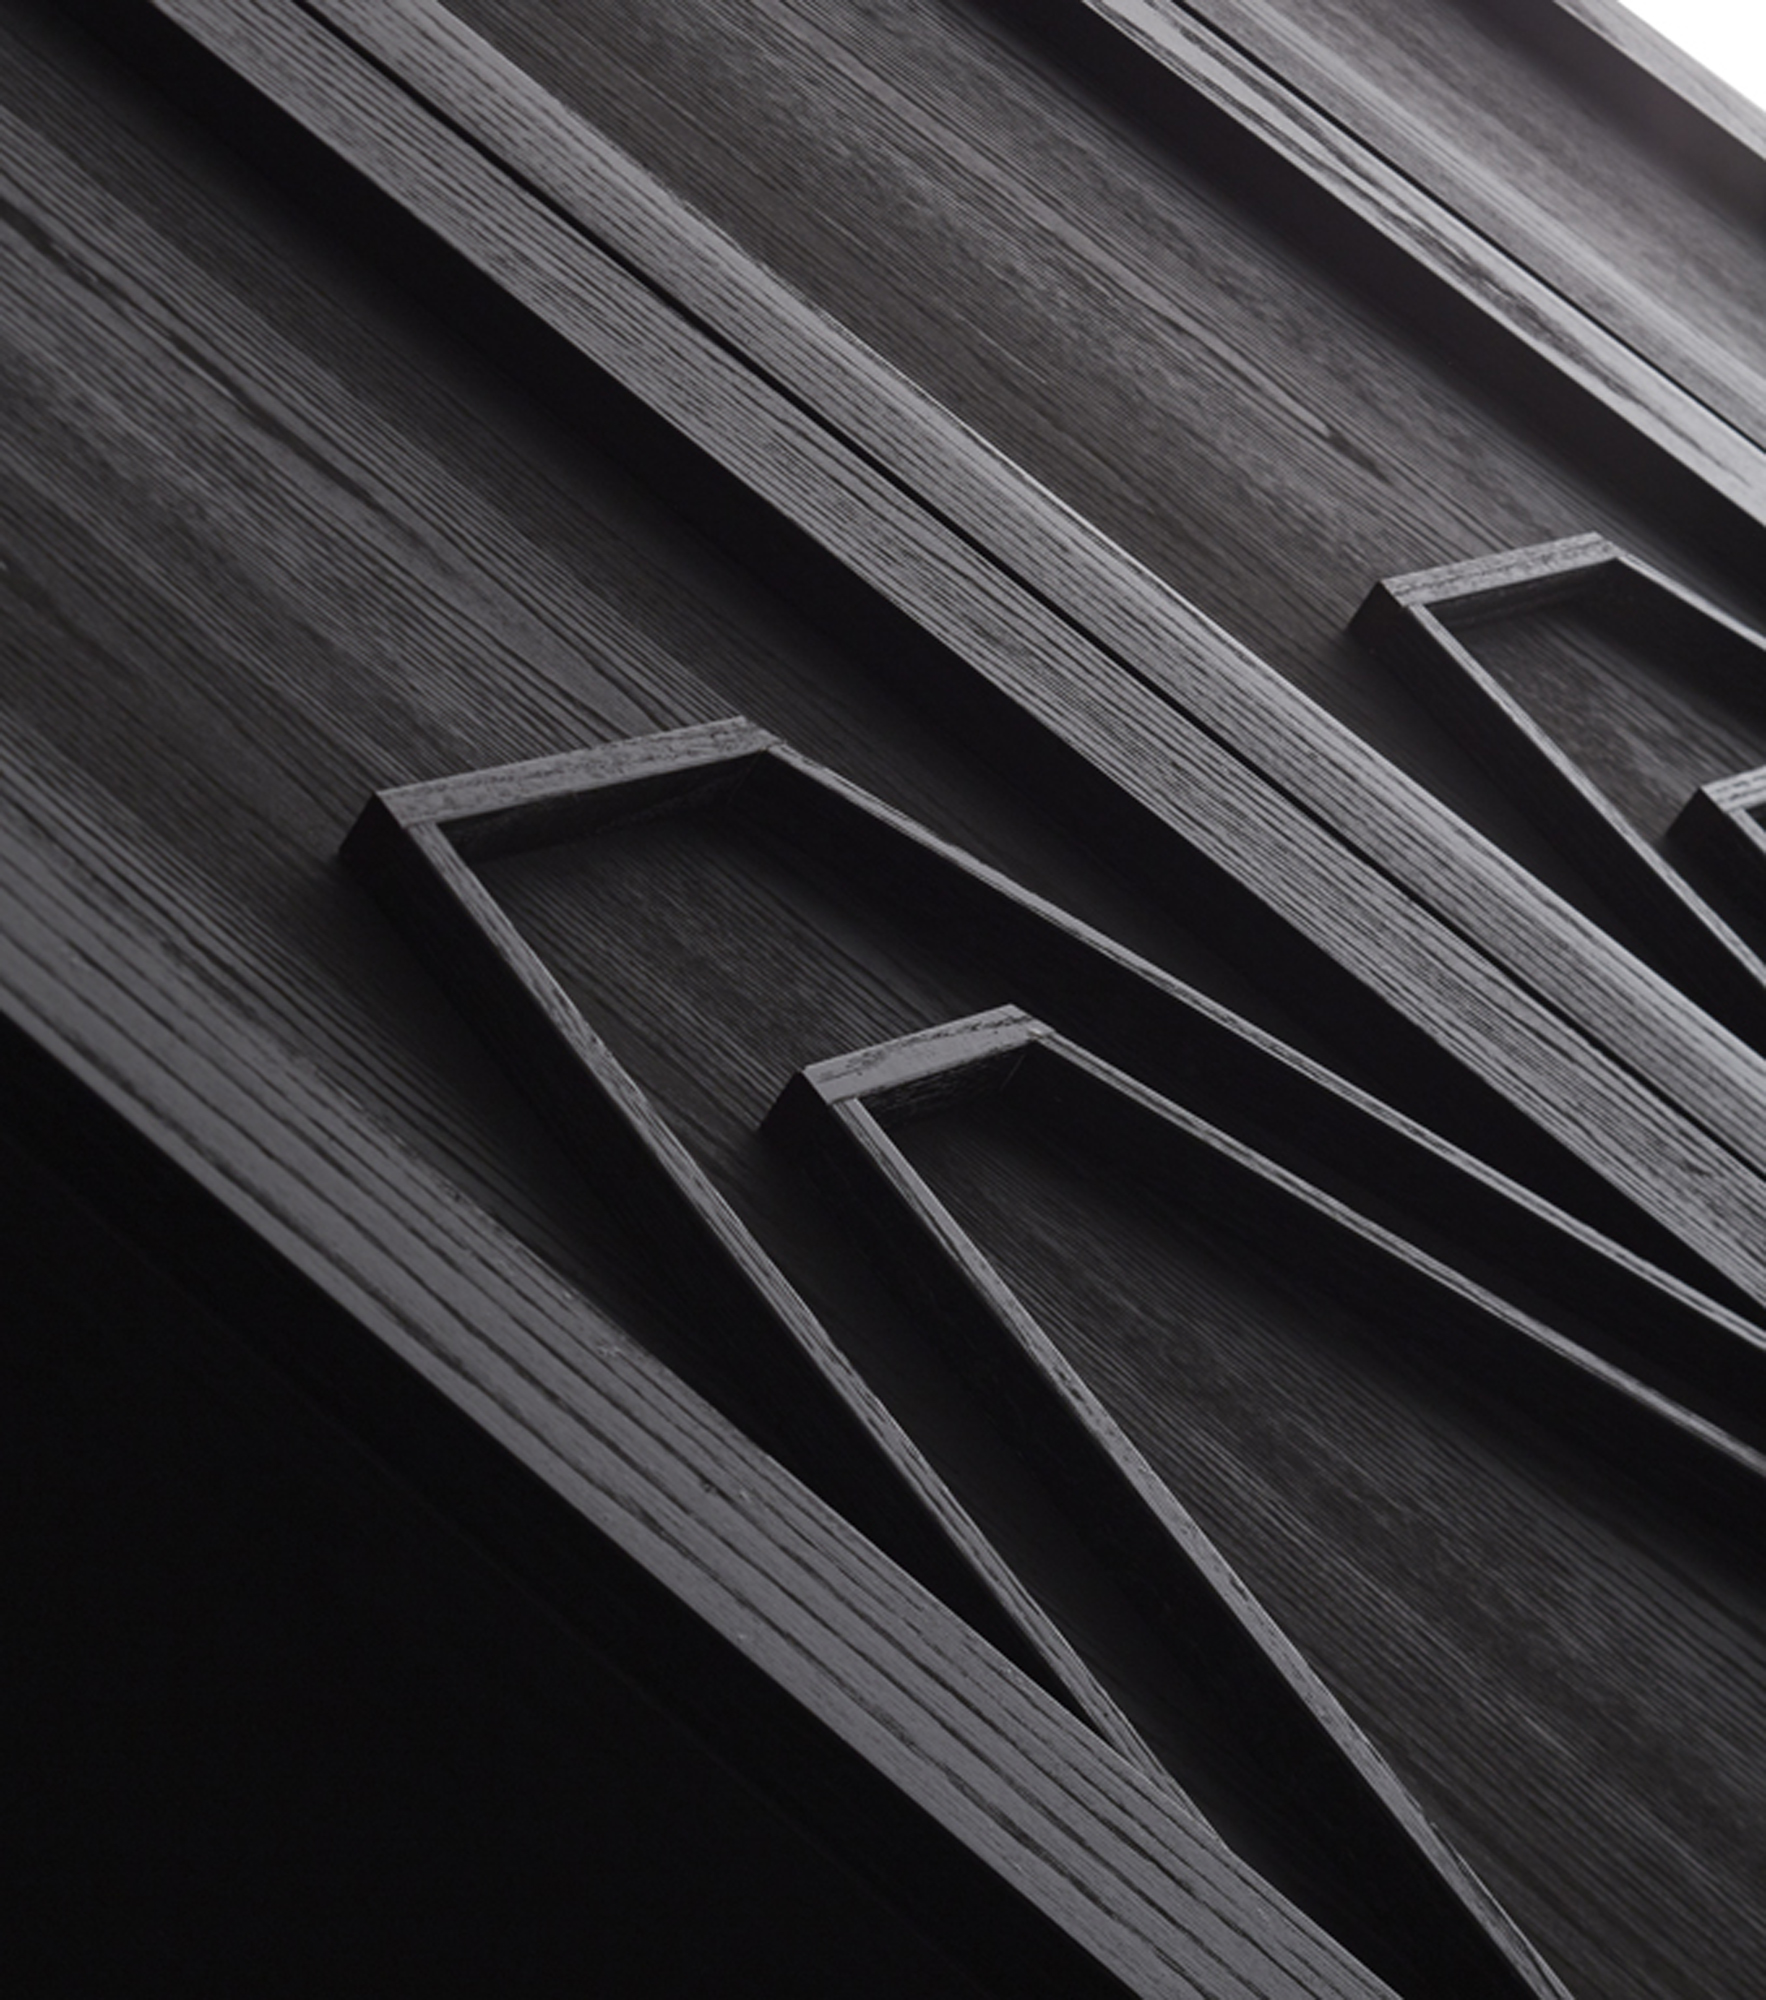 Tailored to perfection, the ebony cabinets feature simple geometric patterns adding another layer of visual interest.